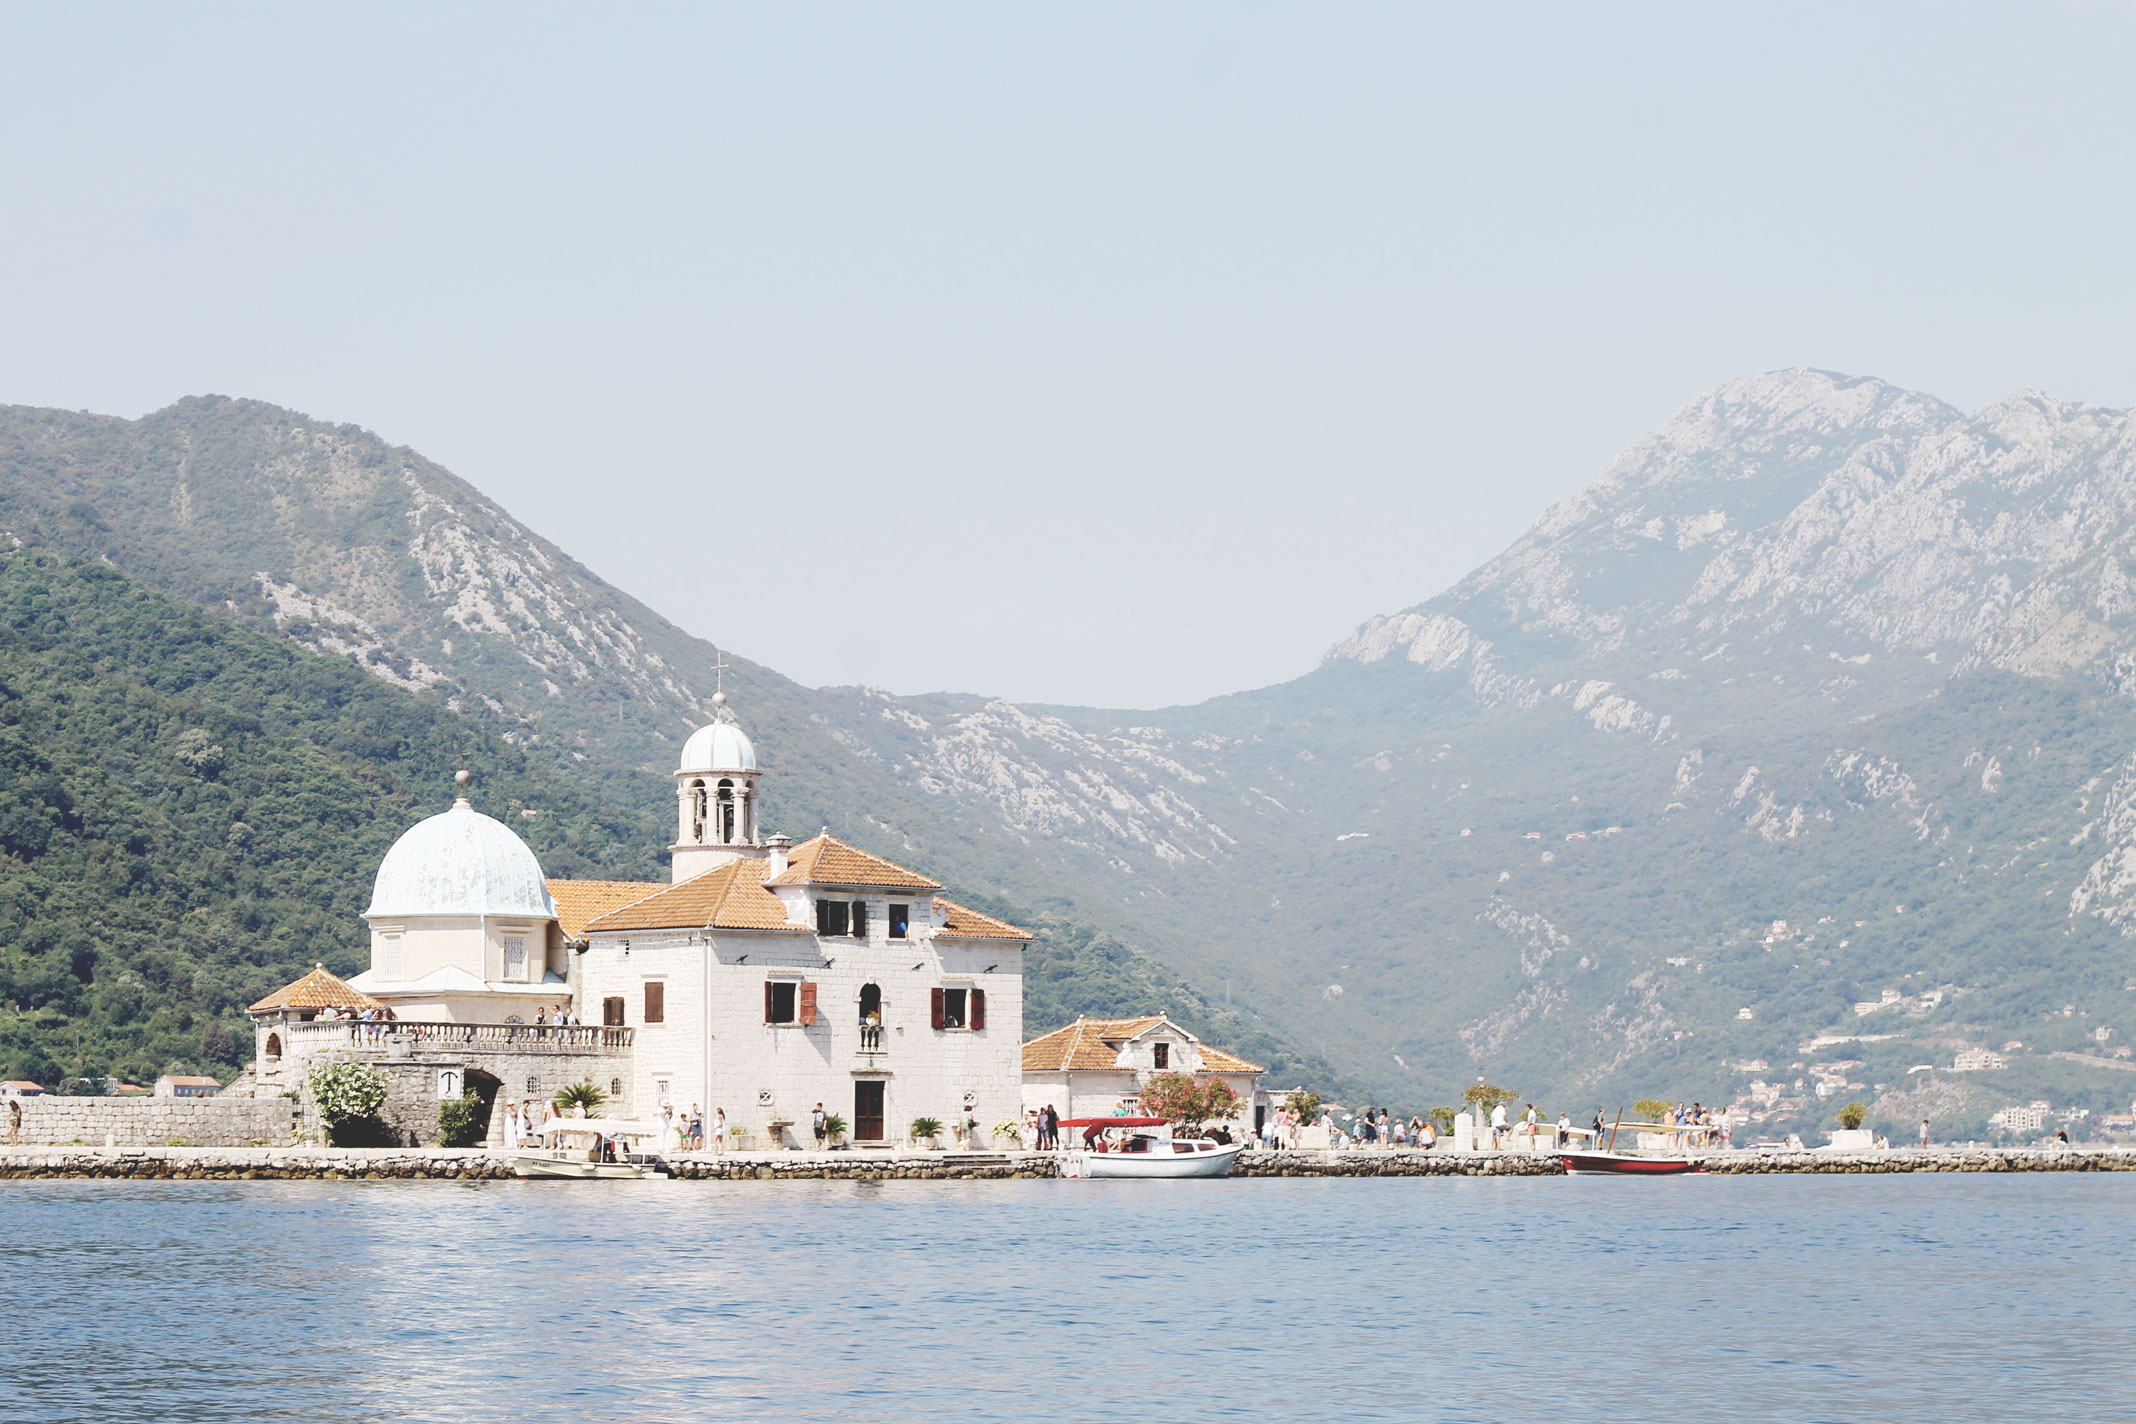 Styleat30 Cruise - How to Spend One Day in Kotor, Montenegro - Travel Blog 07